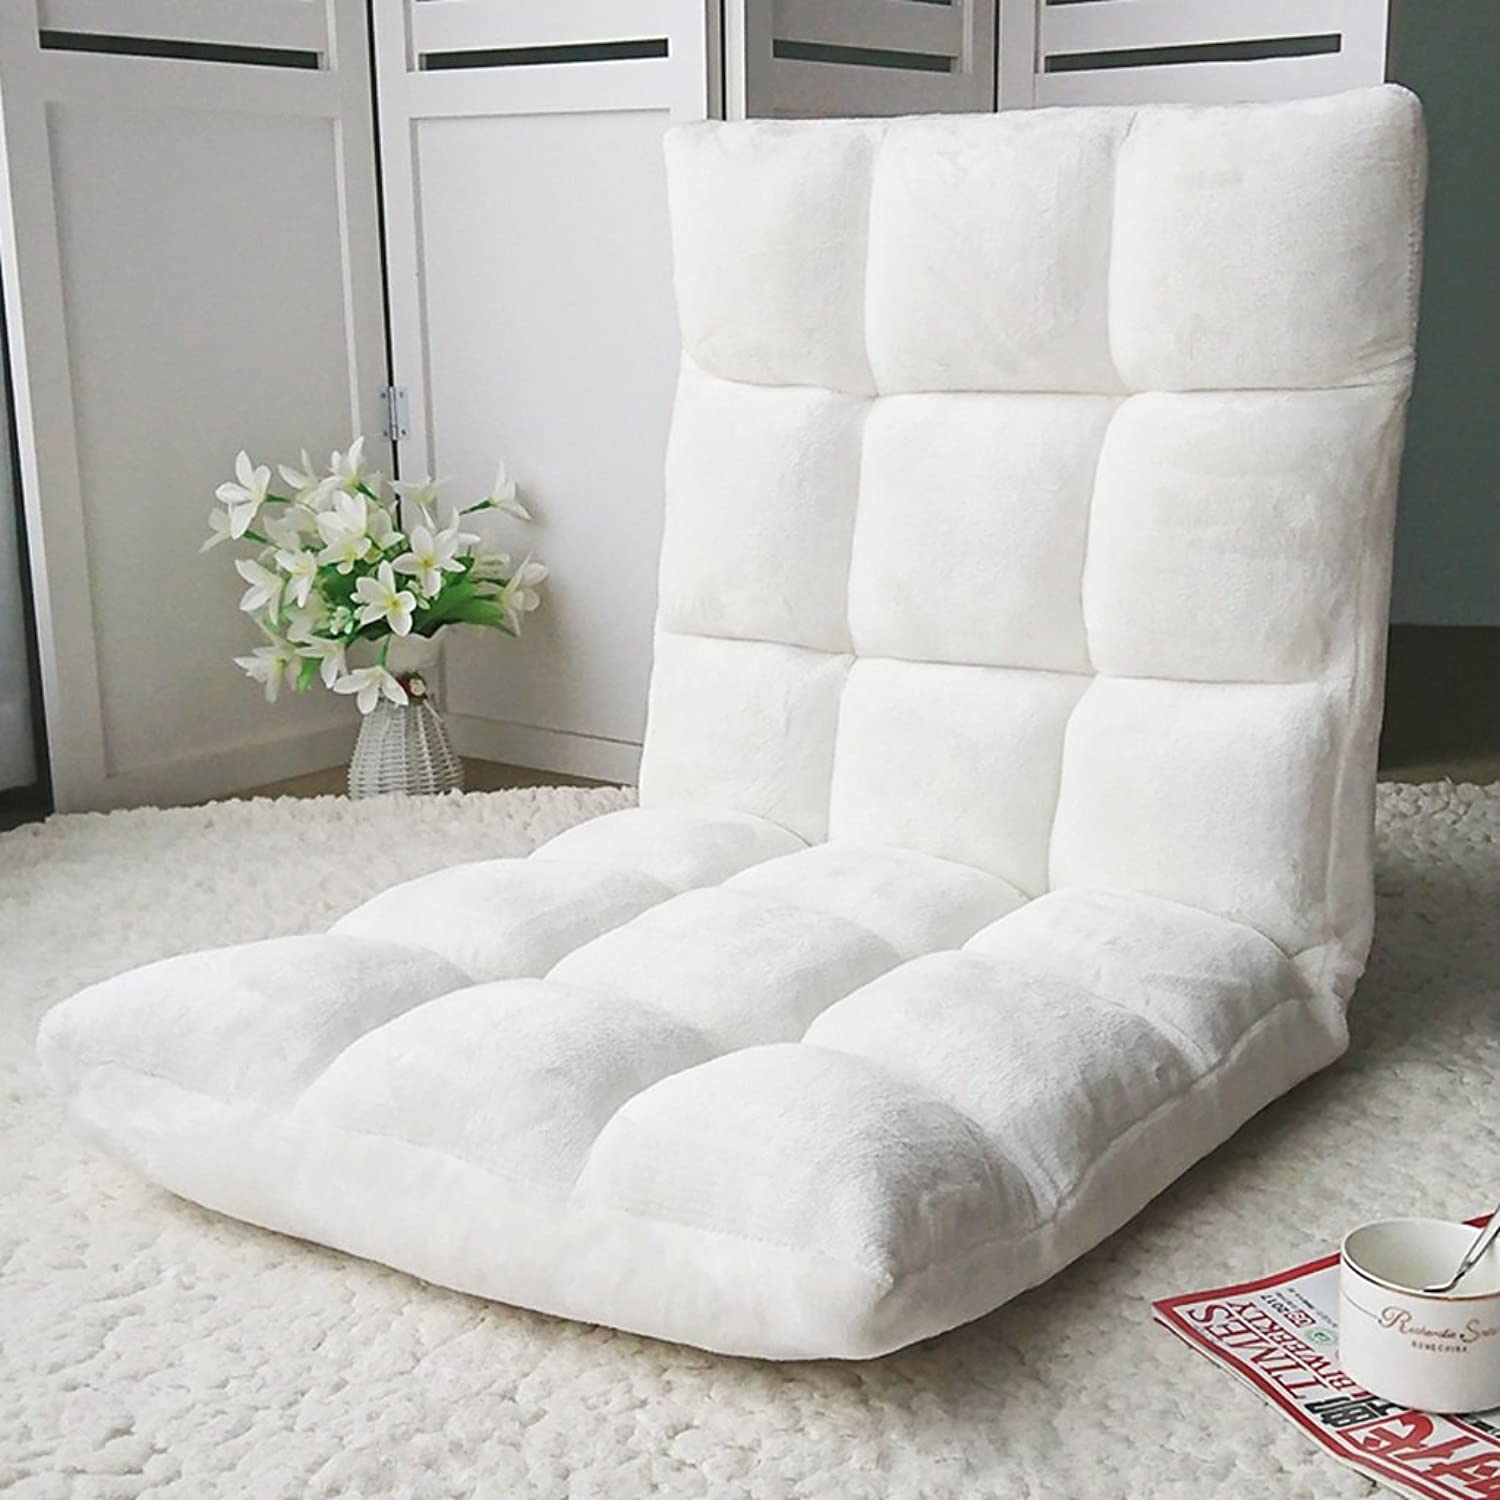 Recliners Lazy Couch Bed Chair Sofa Cute Folding Back Sofa Soft and Comfortable Stylish Single Multifunctional Sofa Single Tatami Sofa Small Bedroom Sofa Chair (color   White)